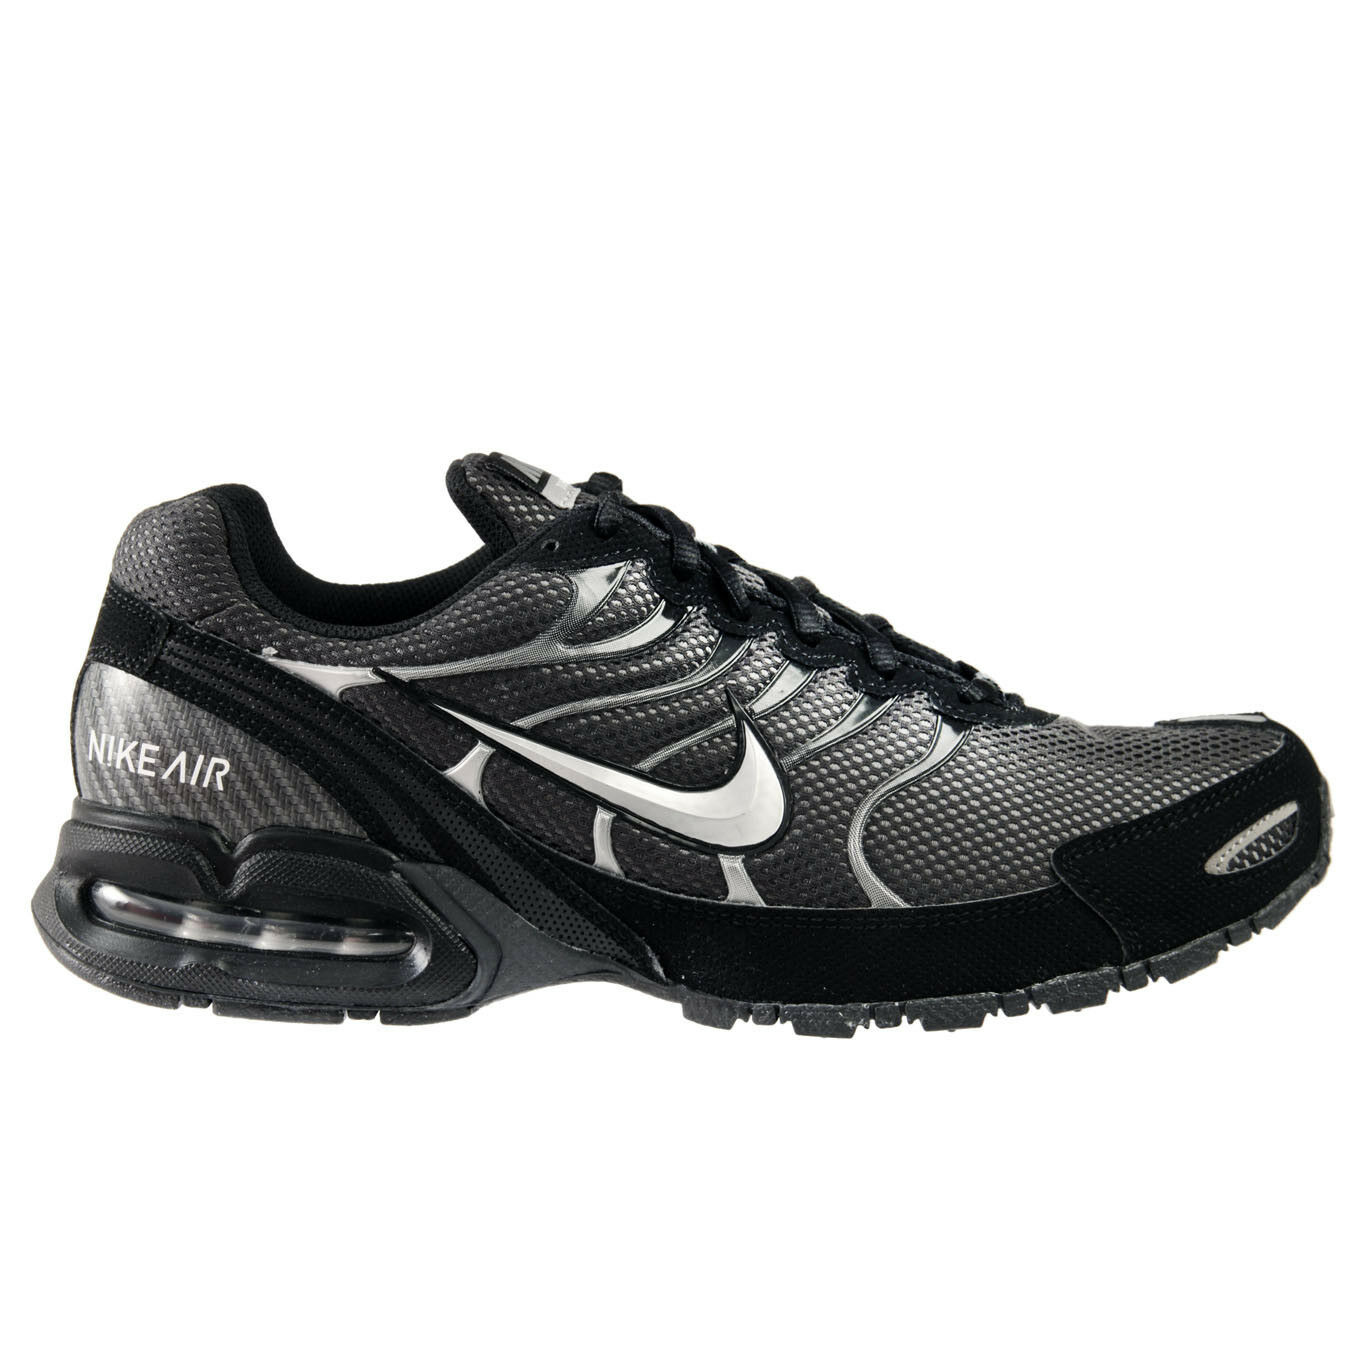 Nike Air Max Torch 4 Mens 343846-002 Black Anthracite Running Shoes Size 9